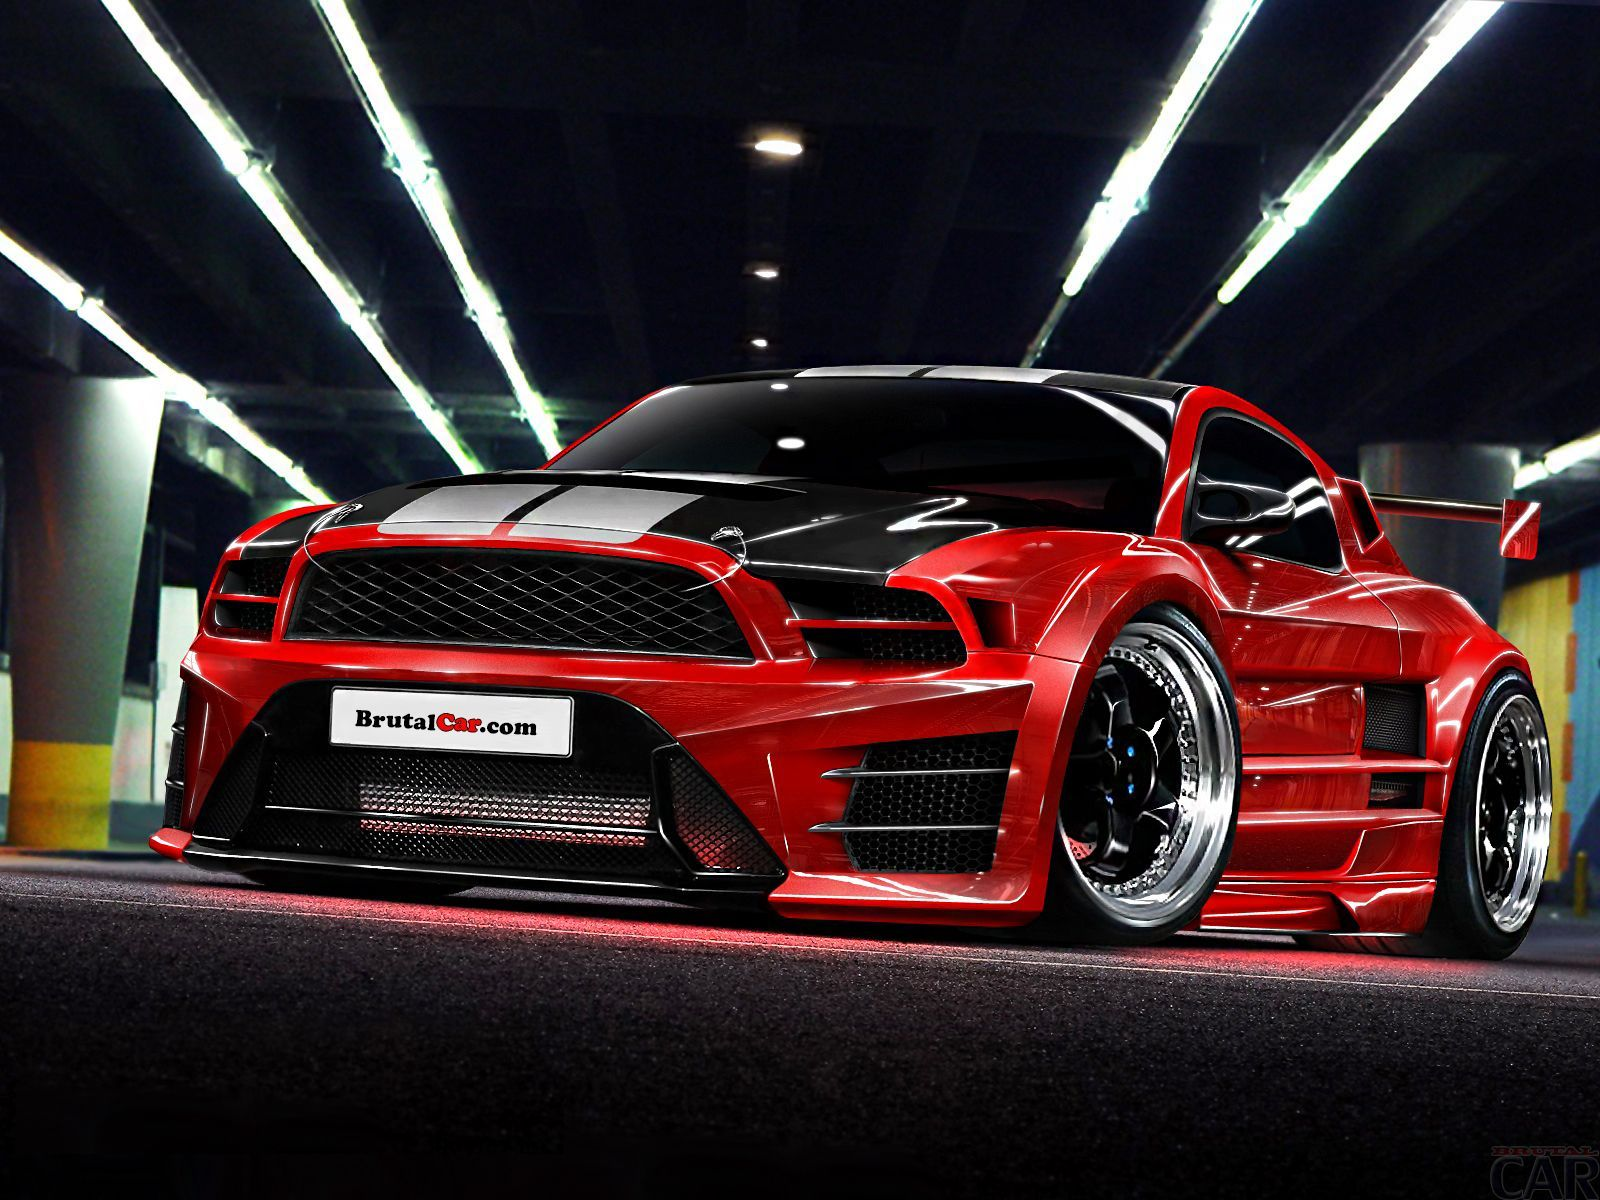 Auto Photo Look Tuning Luxurious Super Fast Cars Red Autos